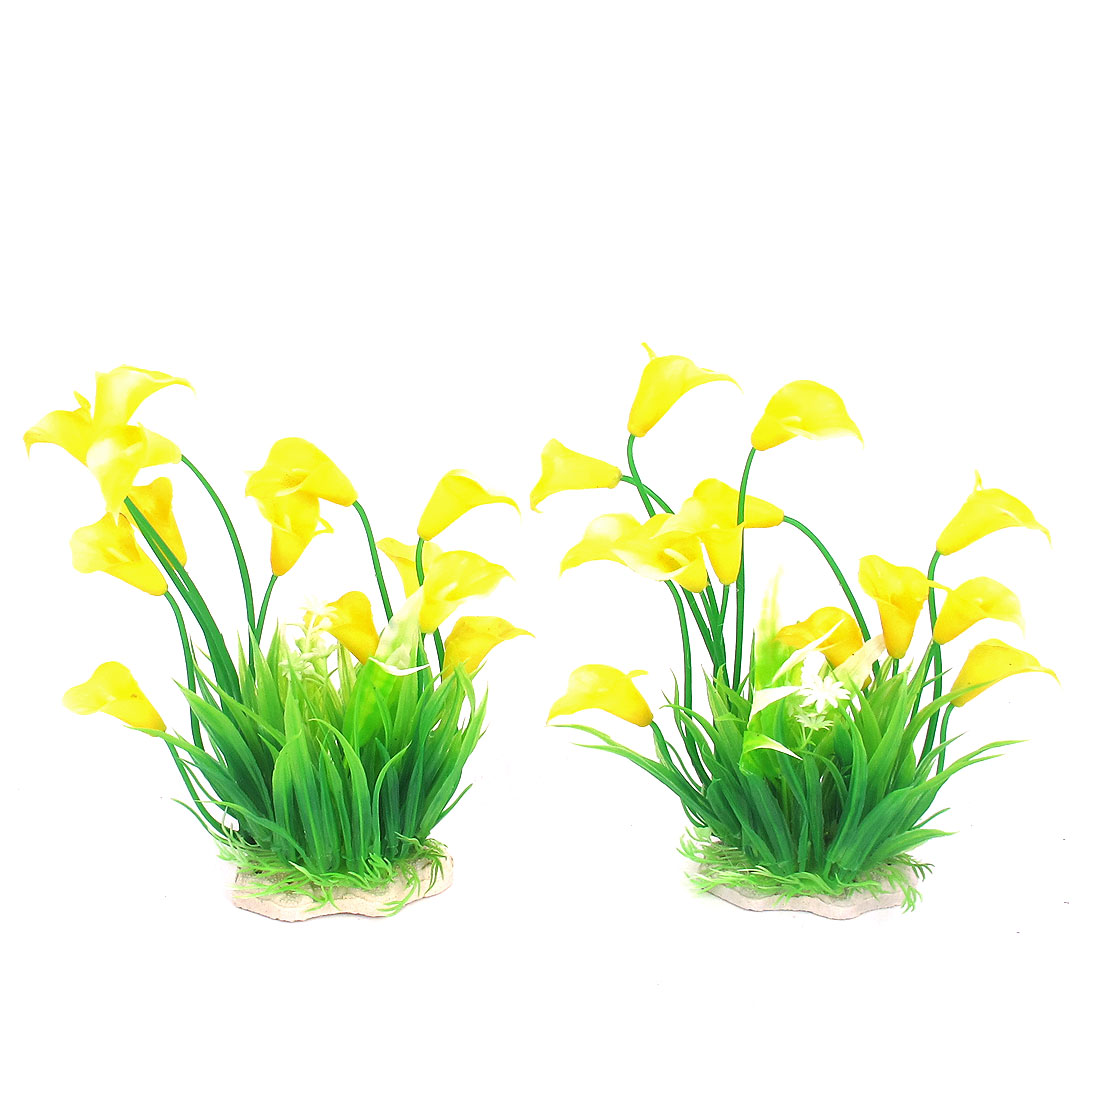 2 Pcs Green Yellow Plastic Ceramic Base Emulational Ornament Flower Plant for Aquarium Fishbowl